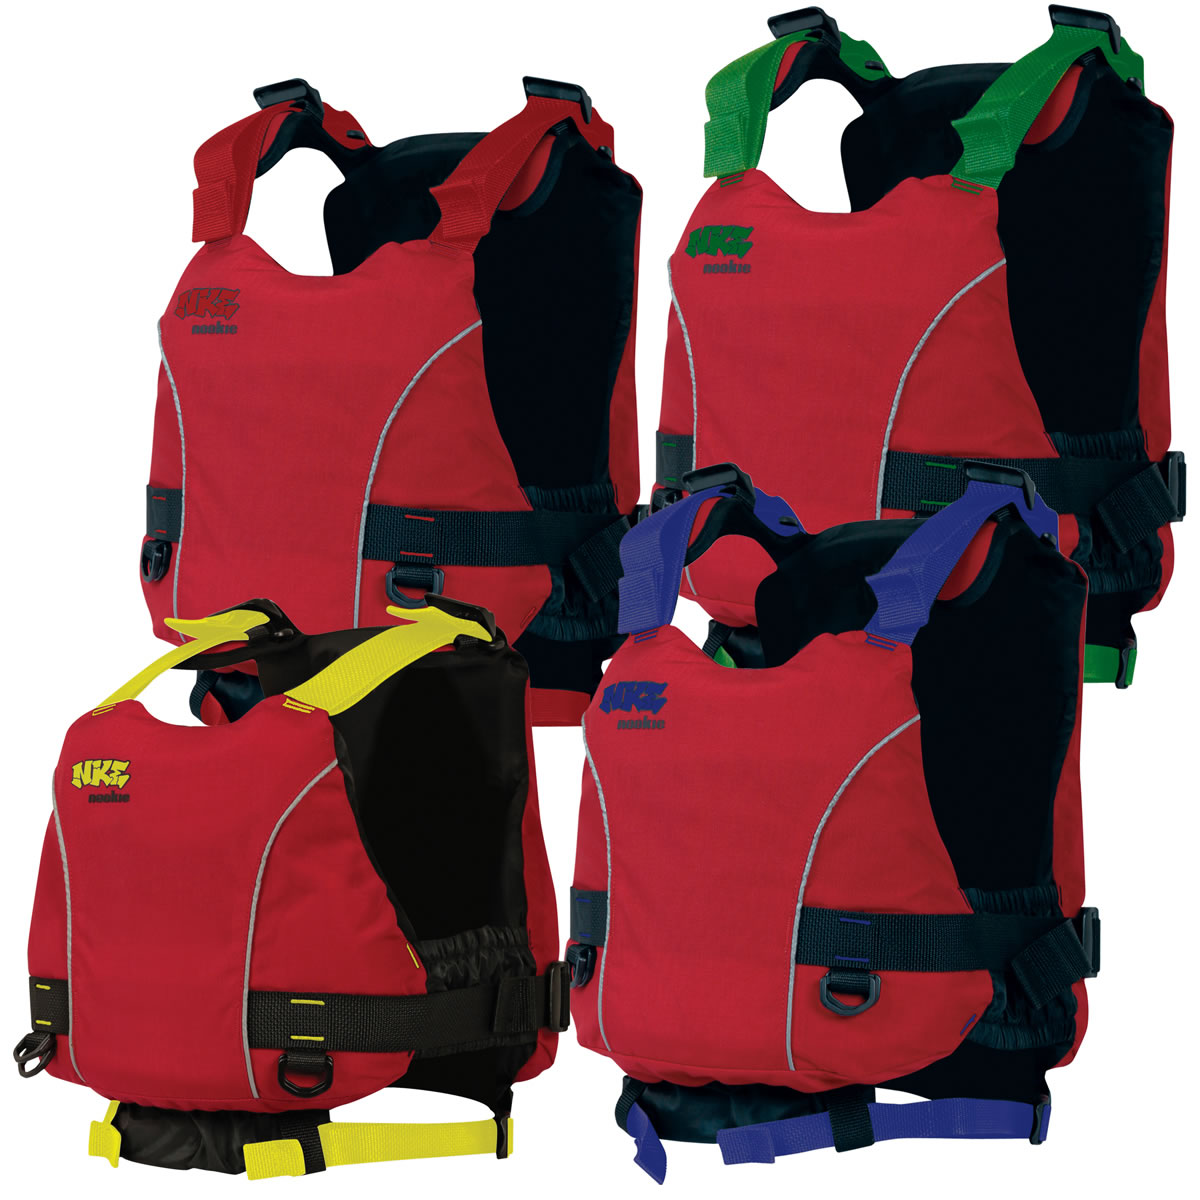 Nookie NKE Vest Buoyancy Aids